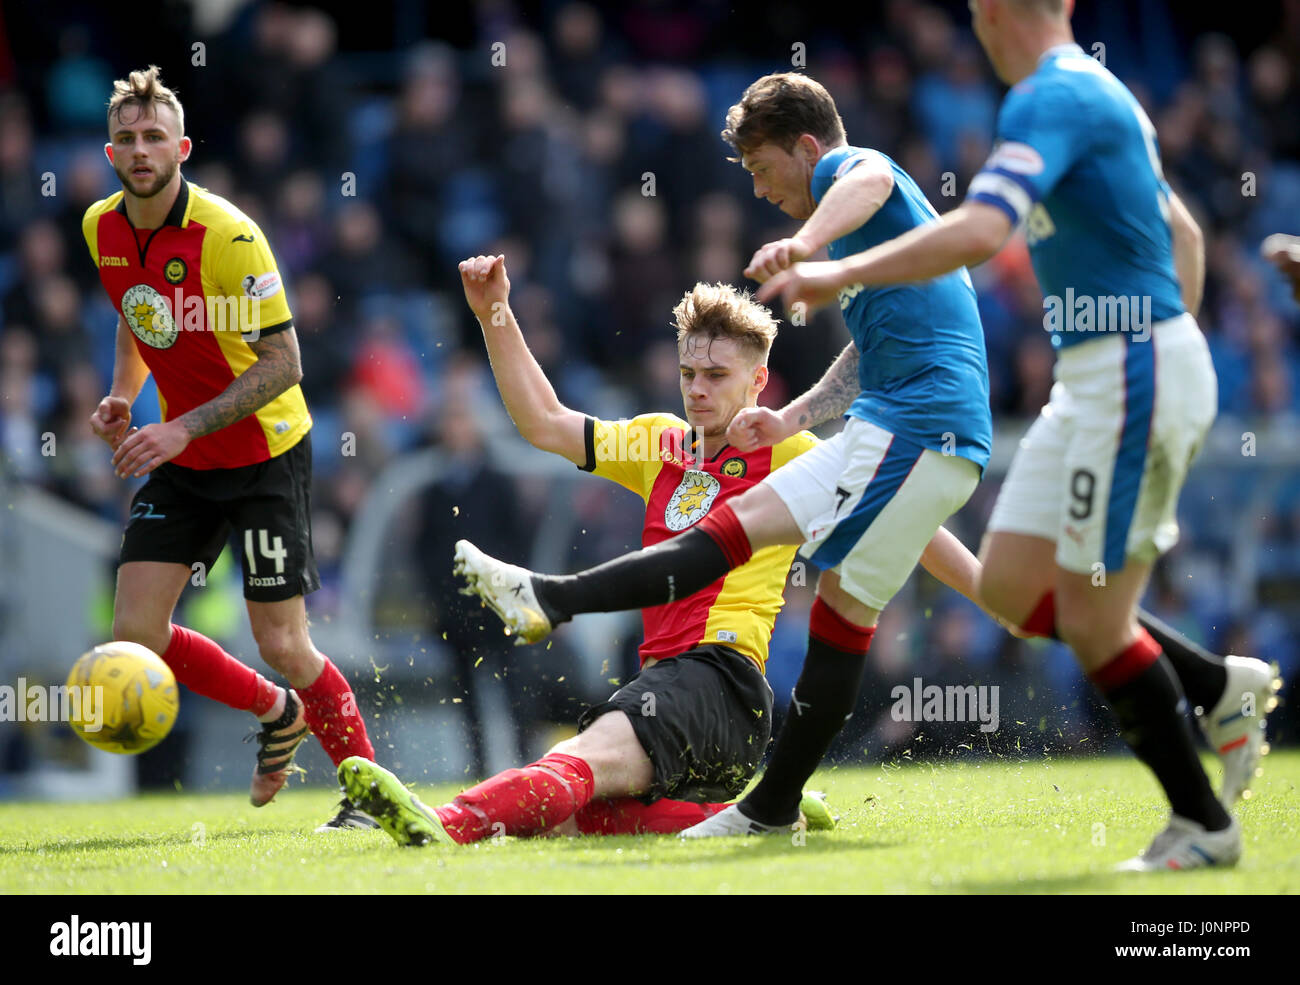 Partick Thistle's Liam Lindsay (centre) tries to block a shot on goal by Rangers' Joe Garner during the - Stock Image